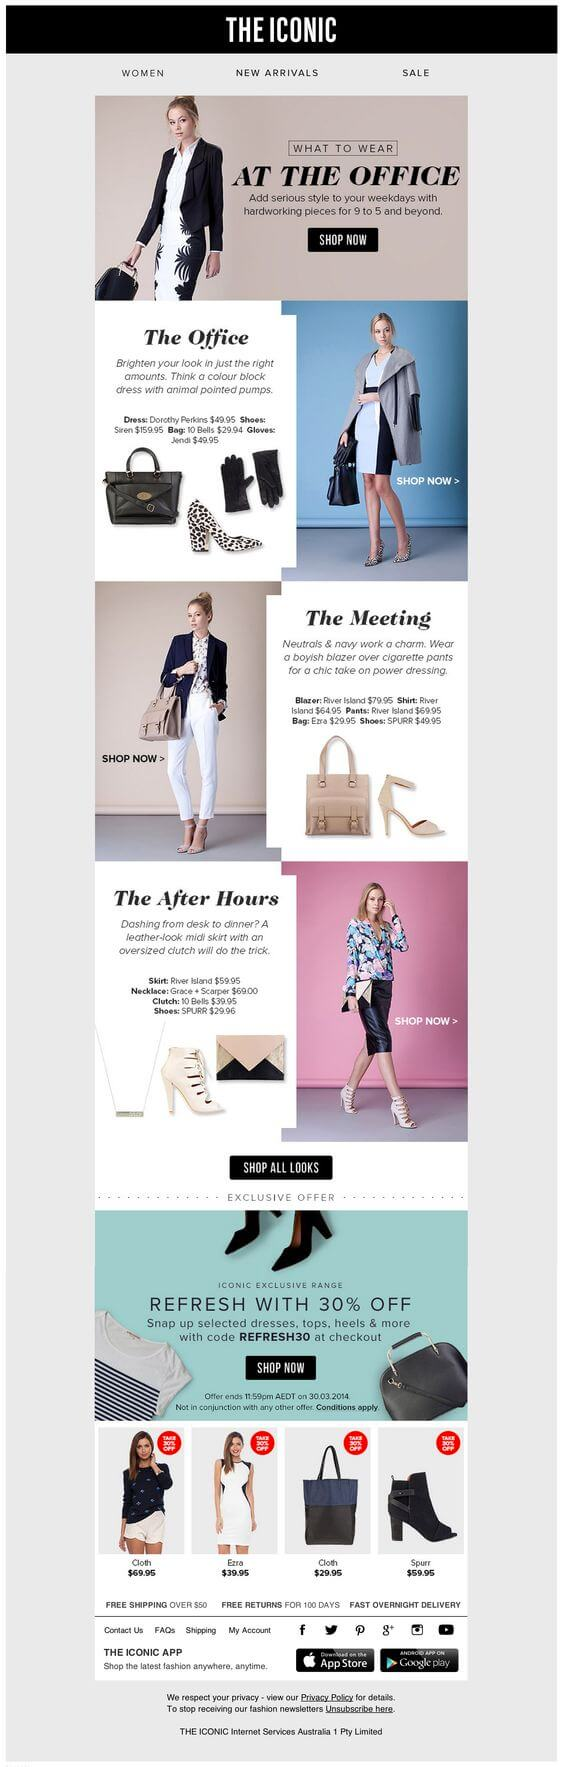 Example of an email marketing design from The Iconic.